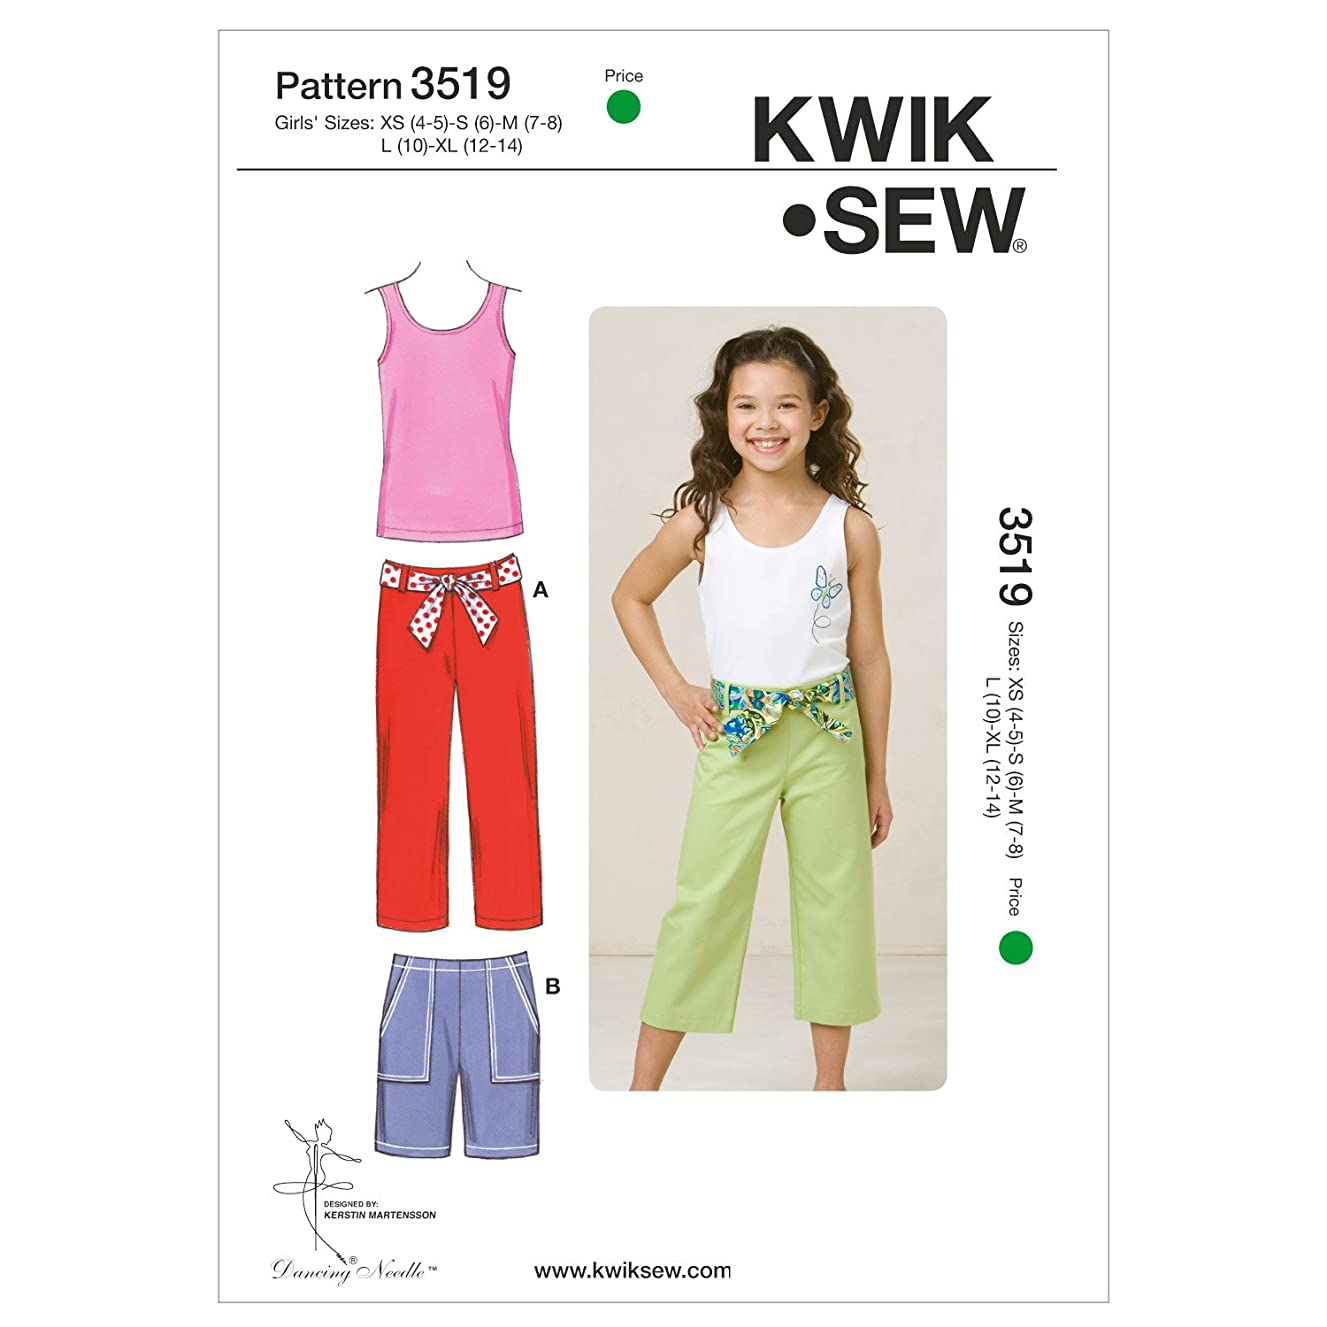 Kwik Sew K3519 Pants Sewing Pattern, Shorts and Top